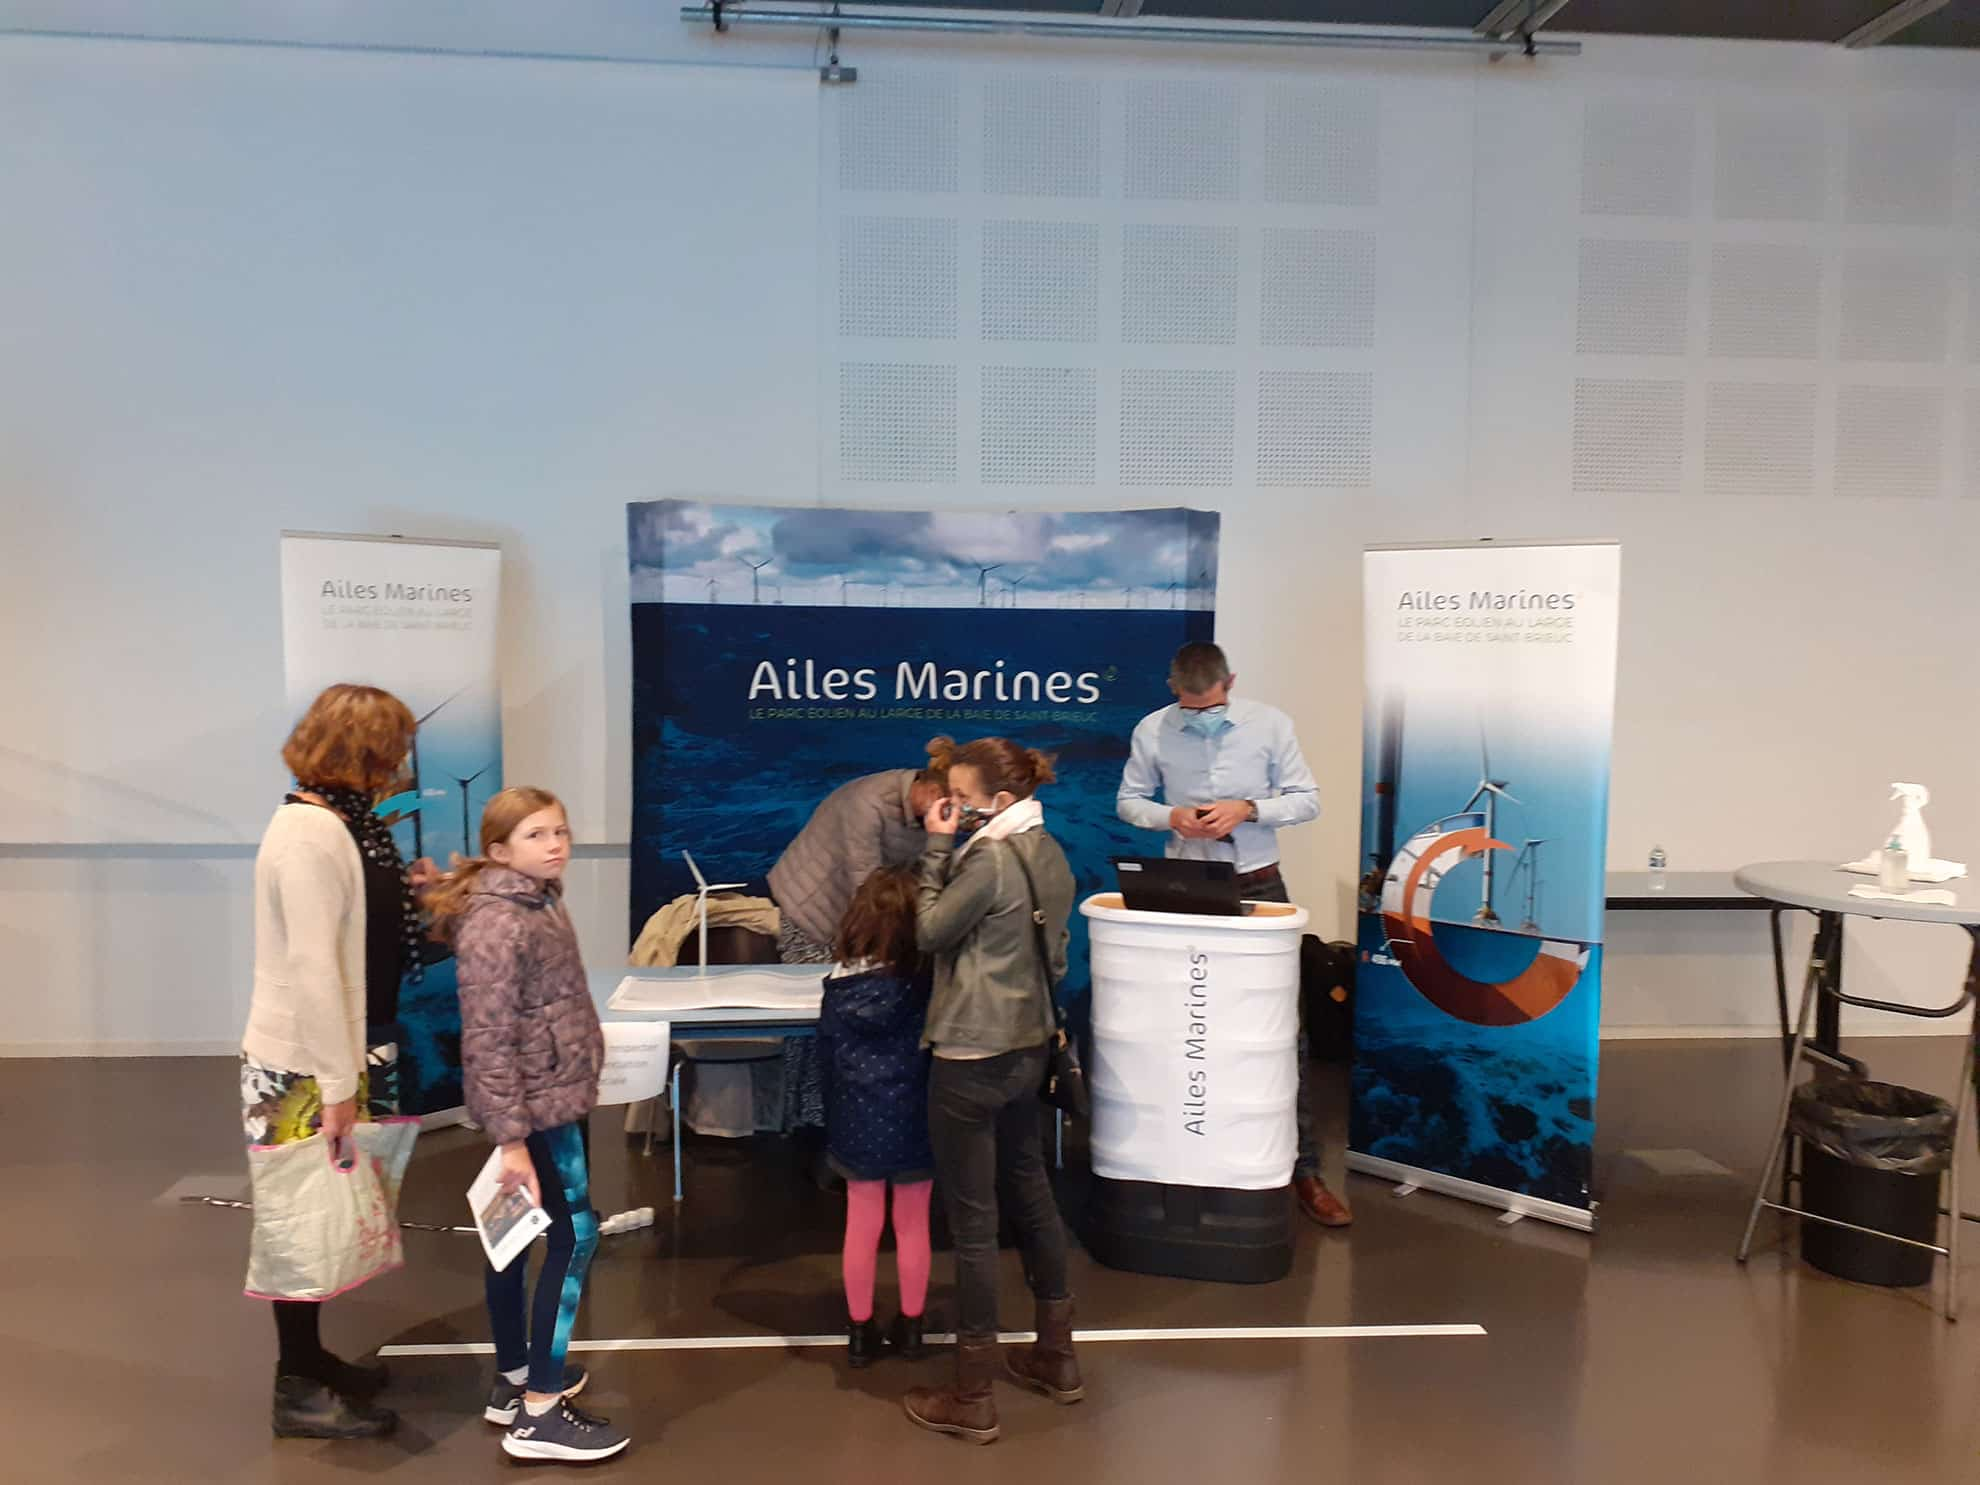 ailes-marines-stand-presentation